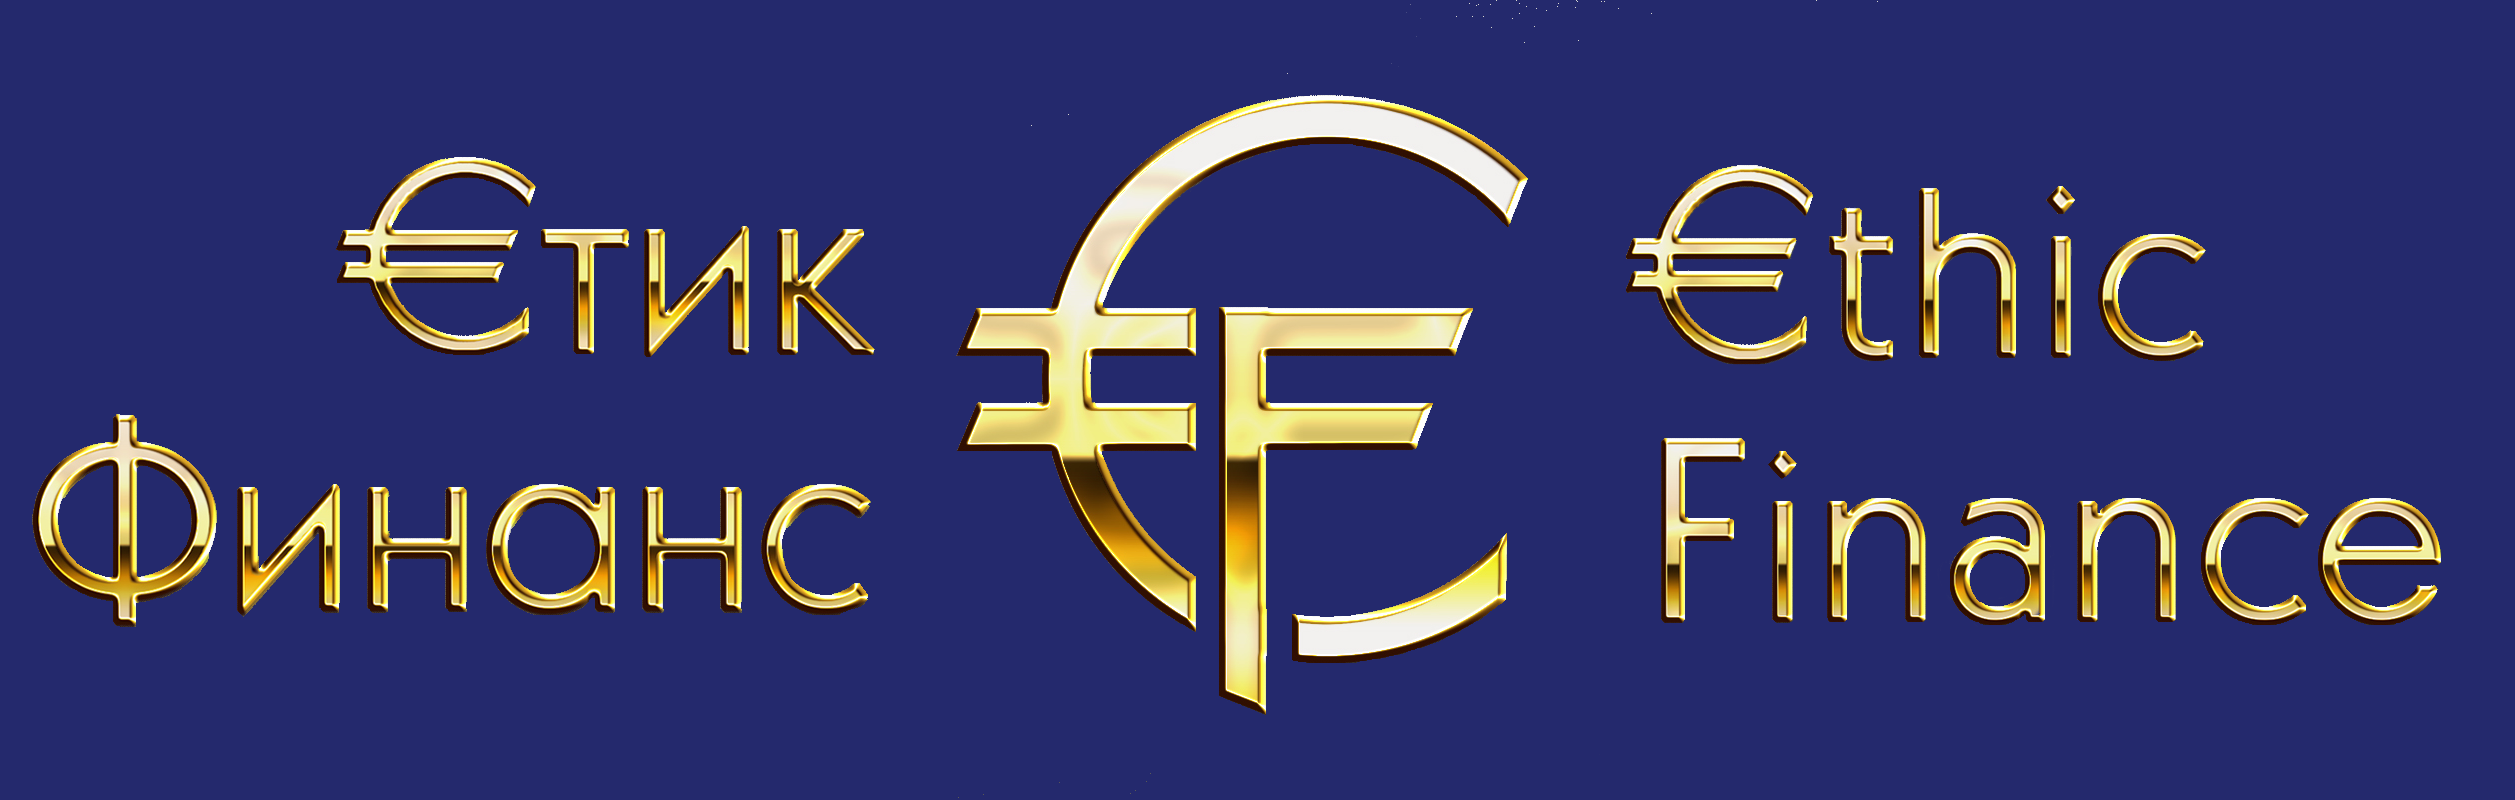 efinance-logo-blue